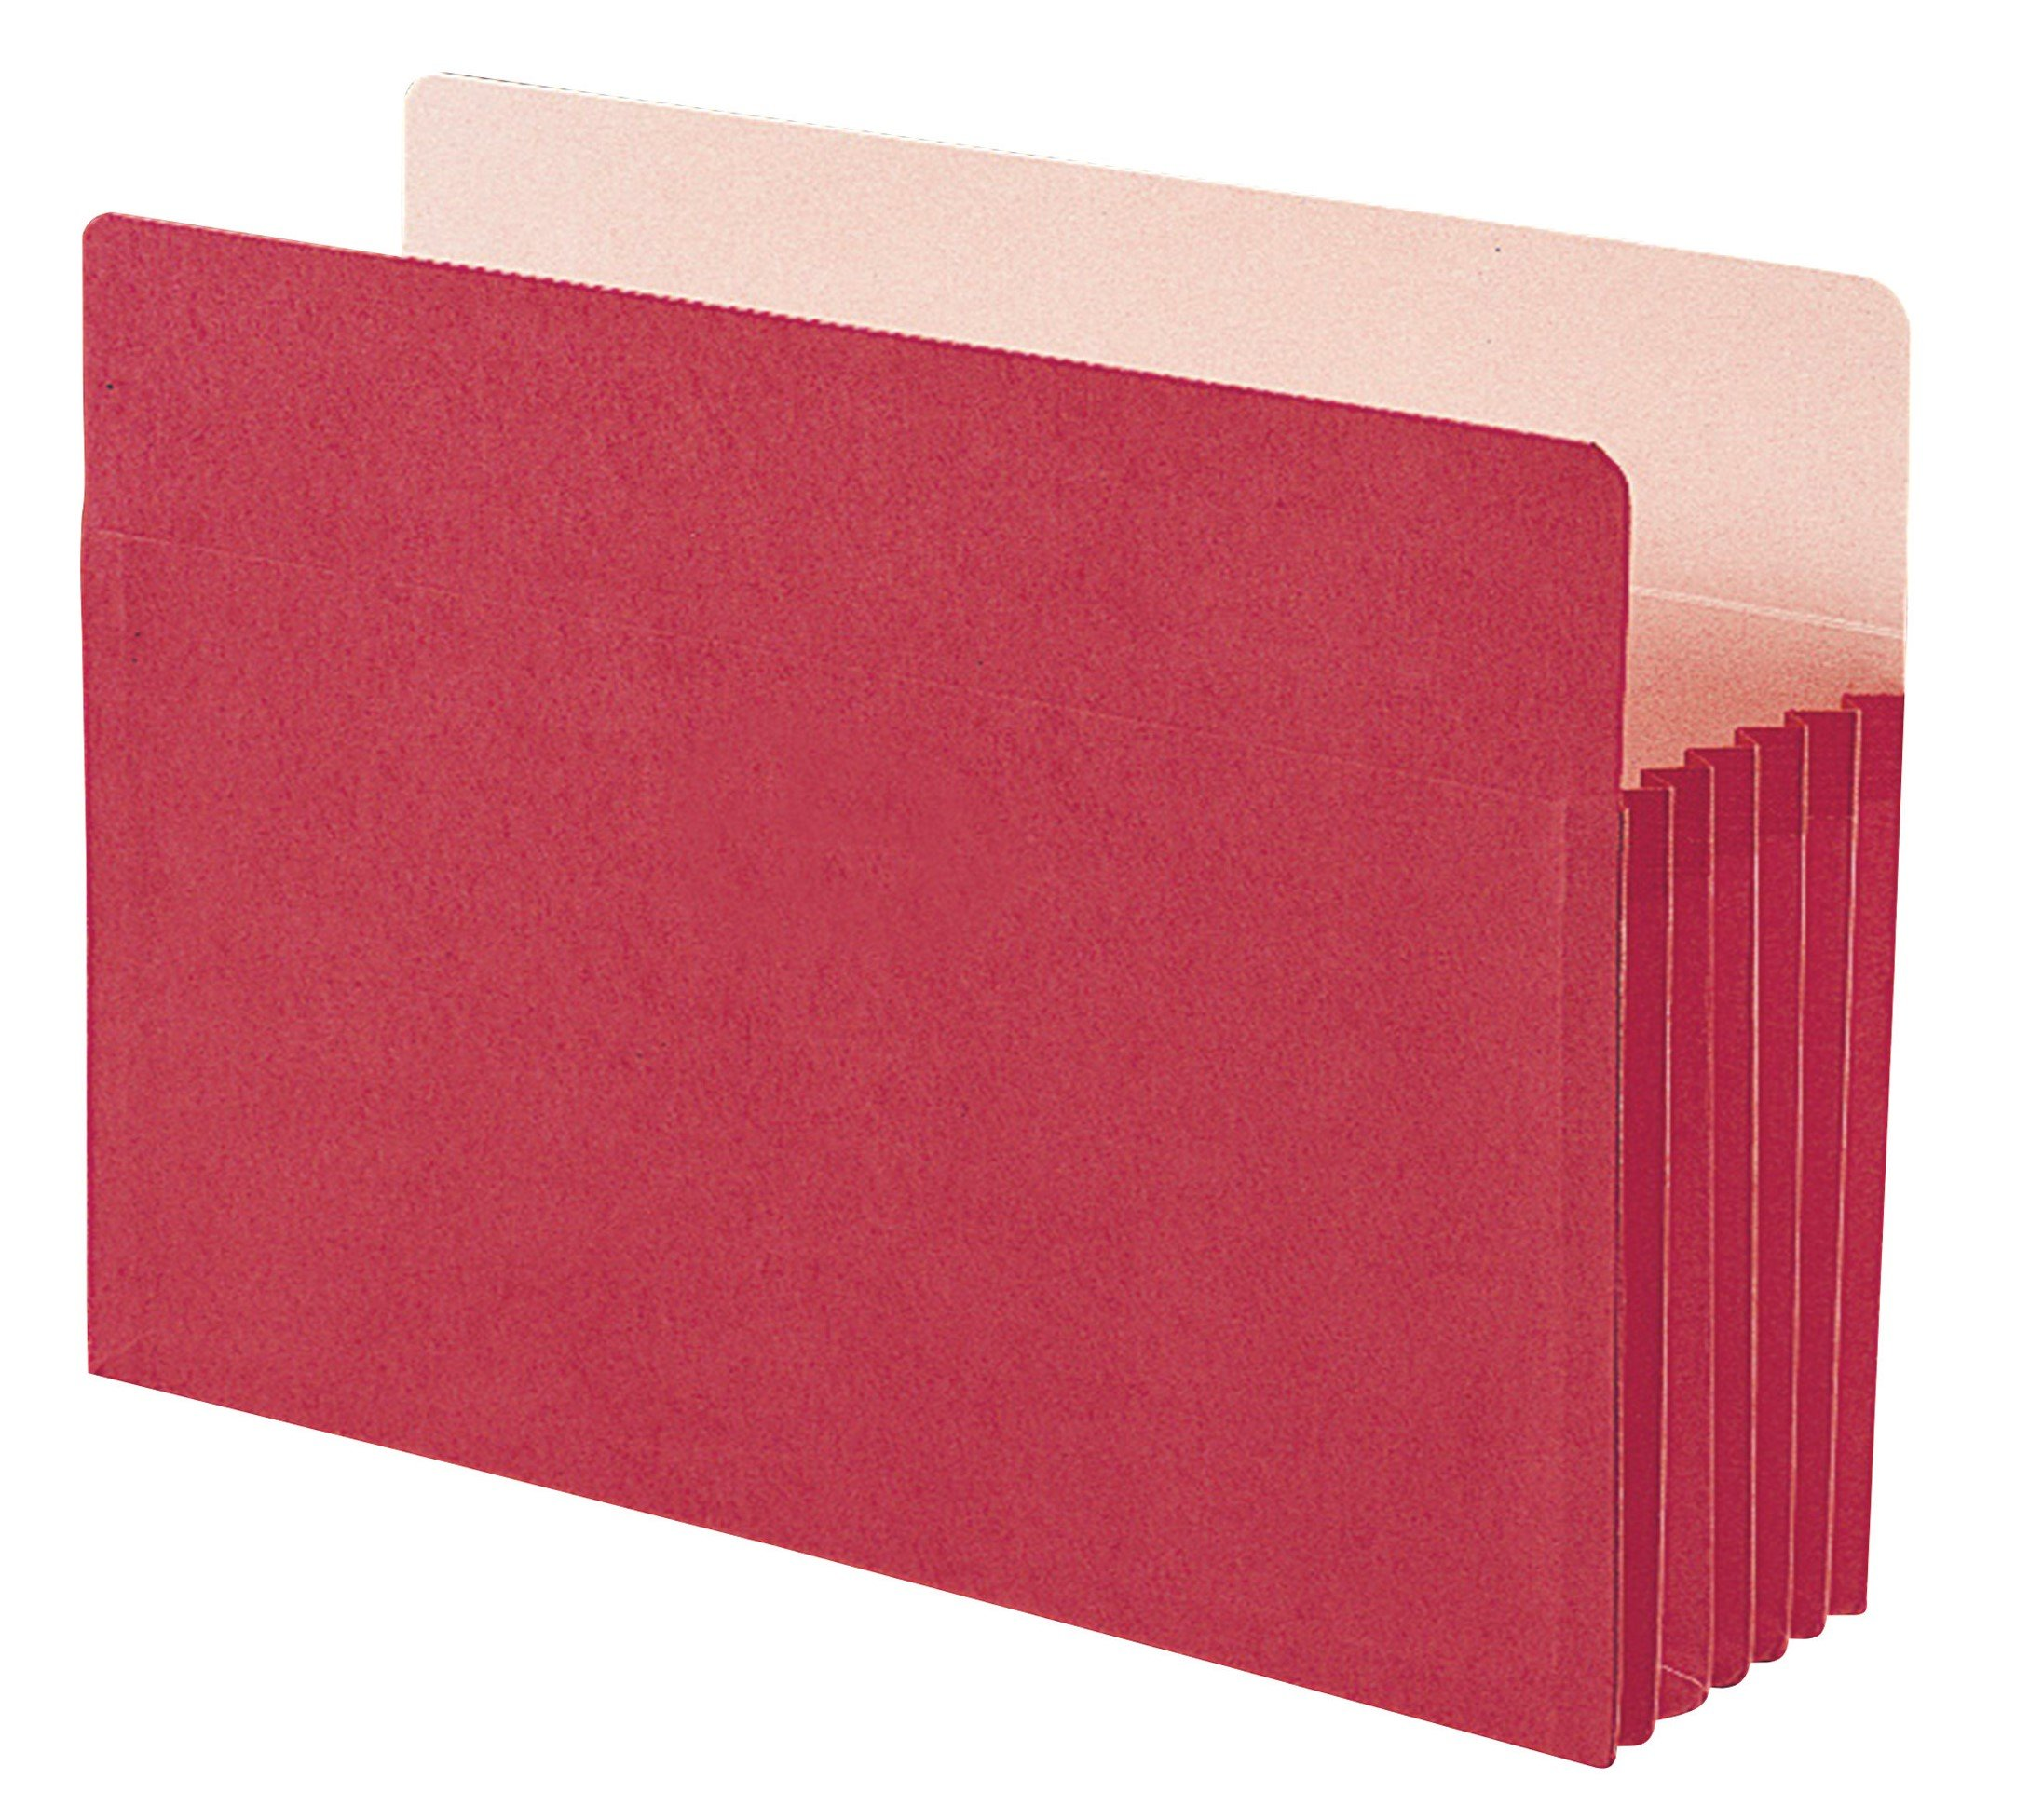 Smead File Pocket, Straight-Cut Tab, 5-1/4'' Expansion, Legal Size, Red, 10 per Box (74241) by Smead